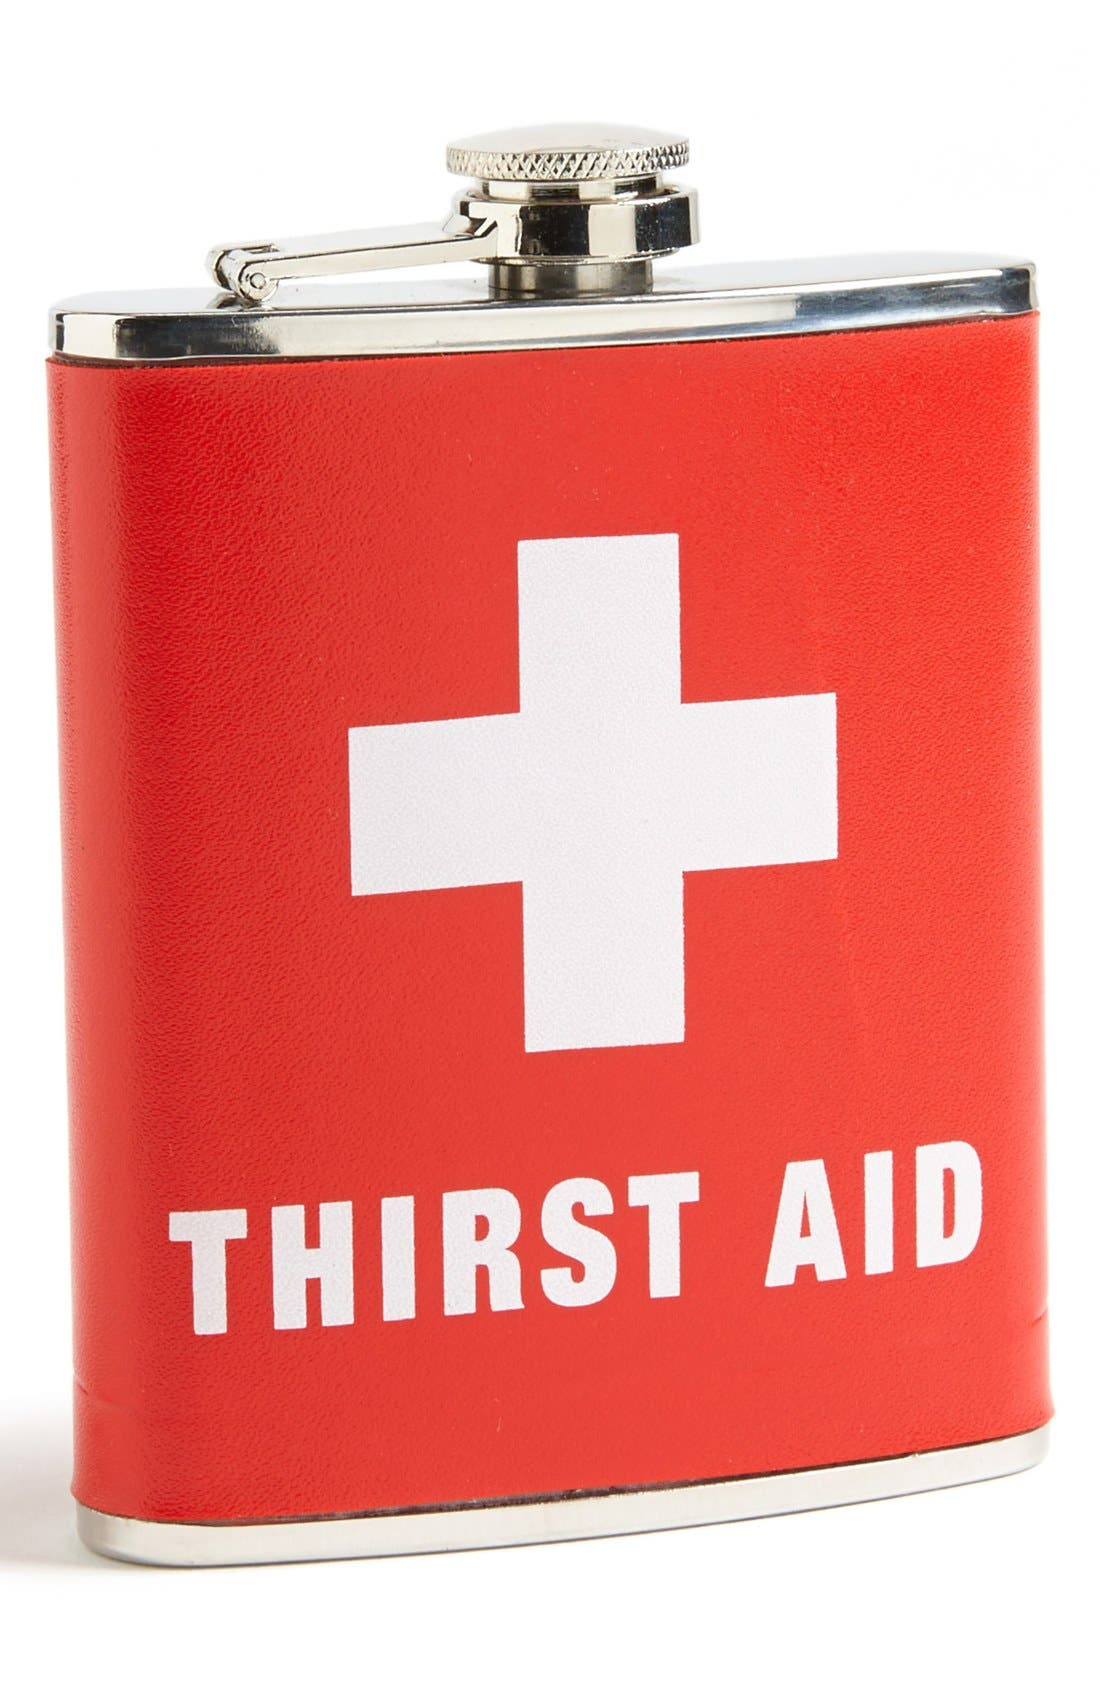 Alternate Image 1 Selected - Wink 'Thirst Aid' Flask